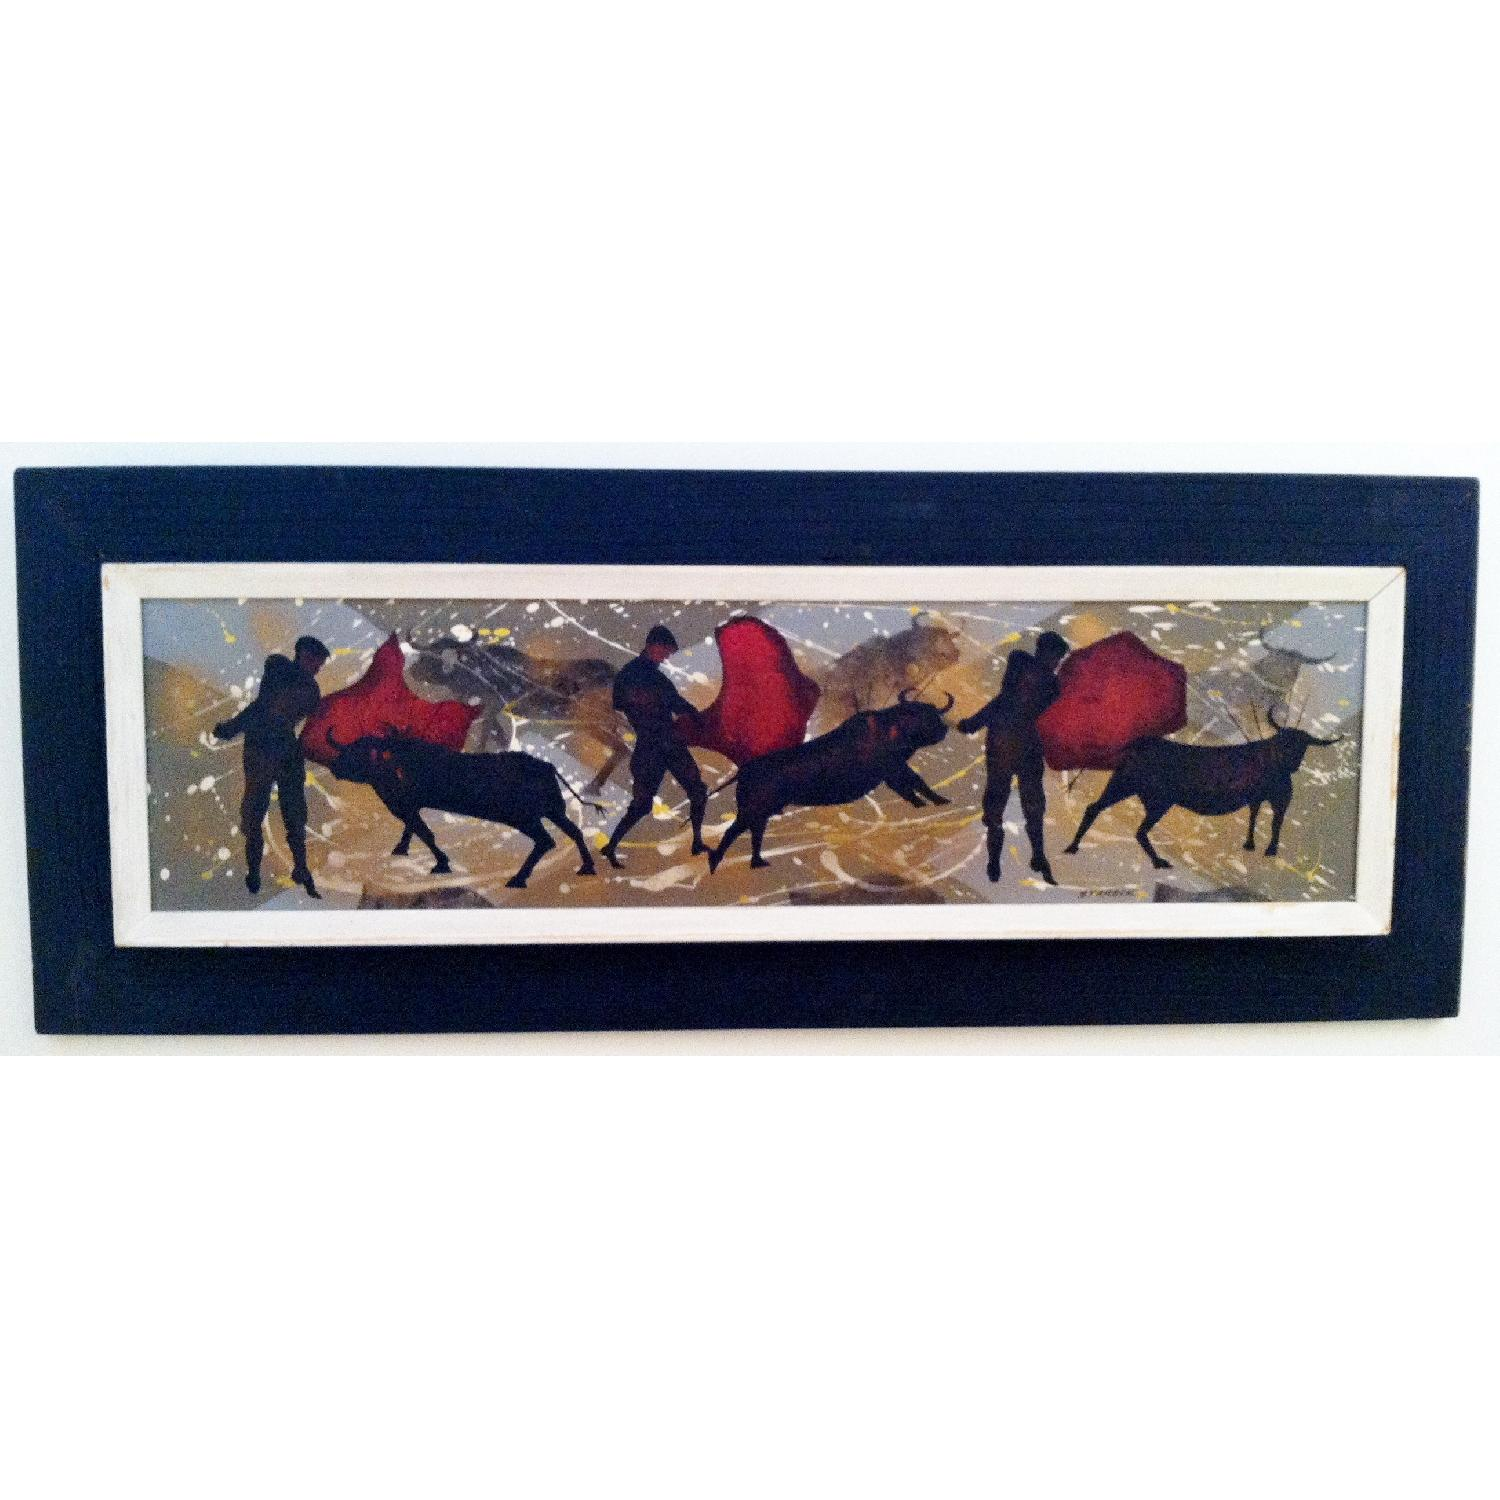 Matadors -  1950's Original Painting by Listed Artist - image-1